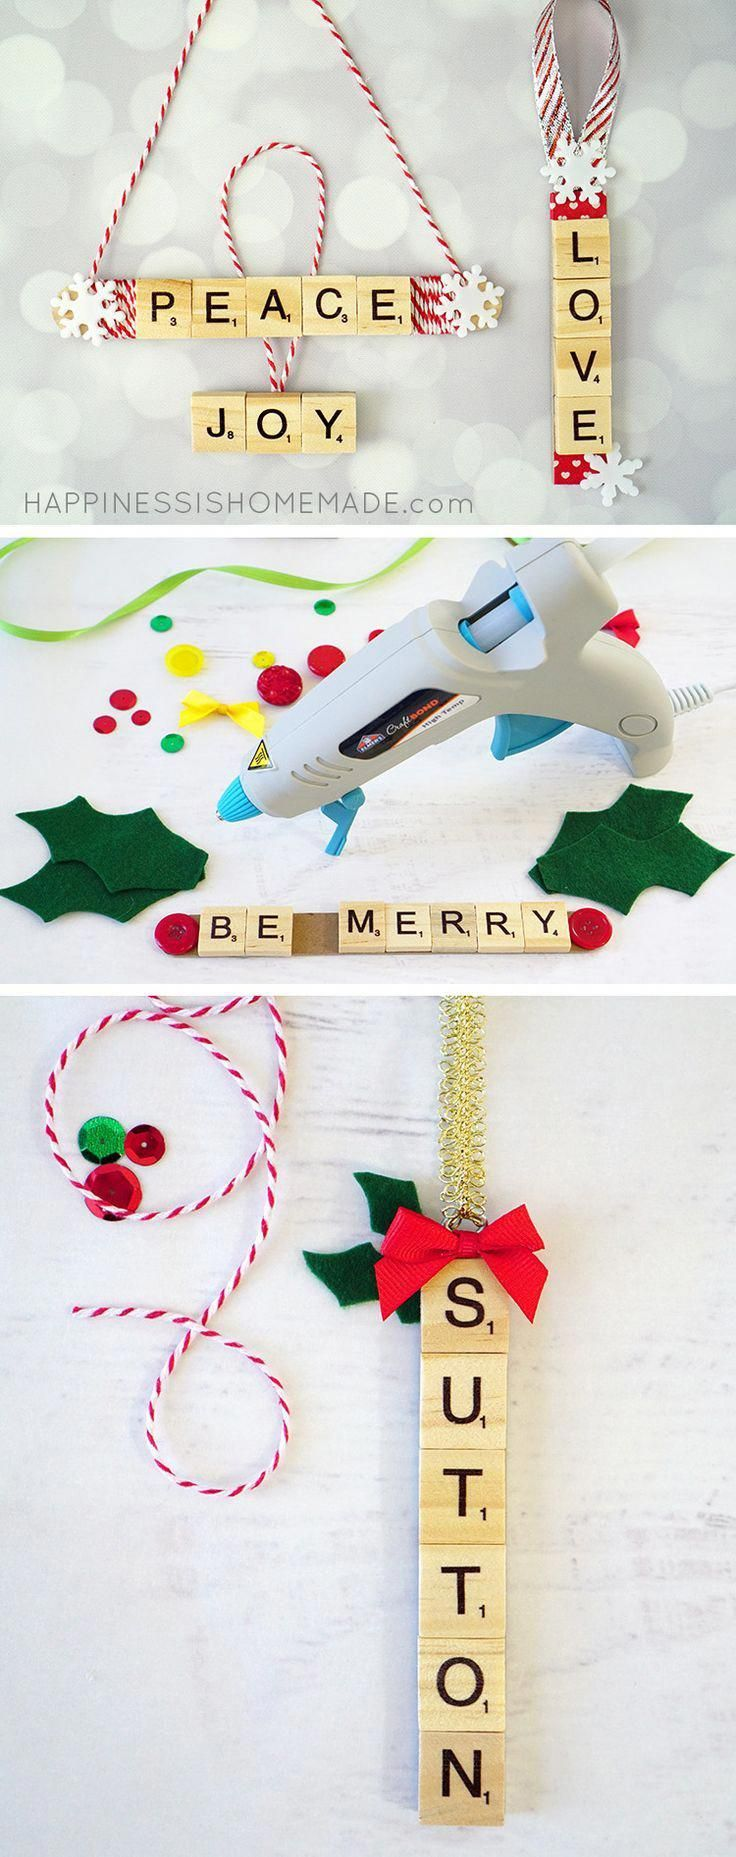 These Scrabble Tile Christmas Ornaments Are A Quick And Easy Holiday Craft And Christmas Gifts For Kids Scrabble Christmas Decorations Diy Christmas Ornaments